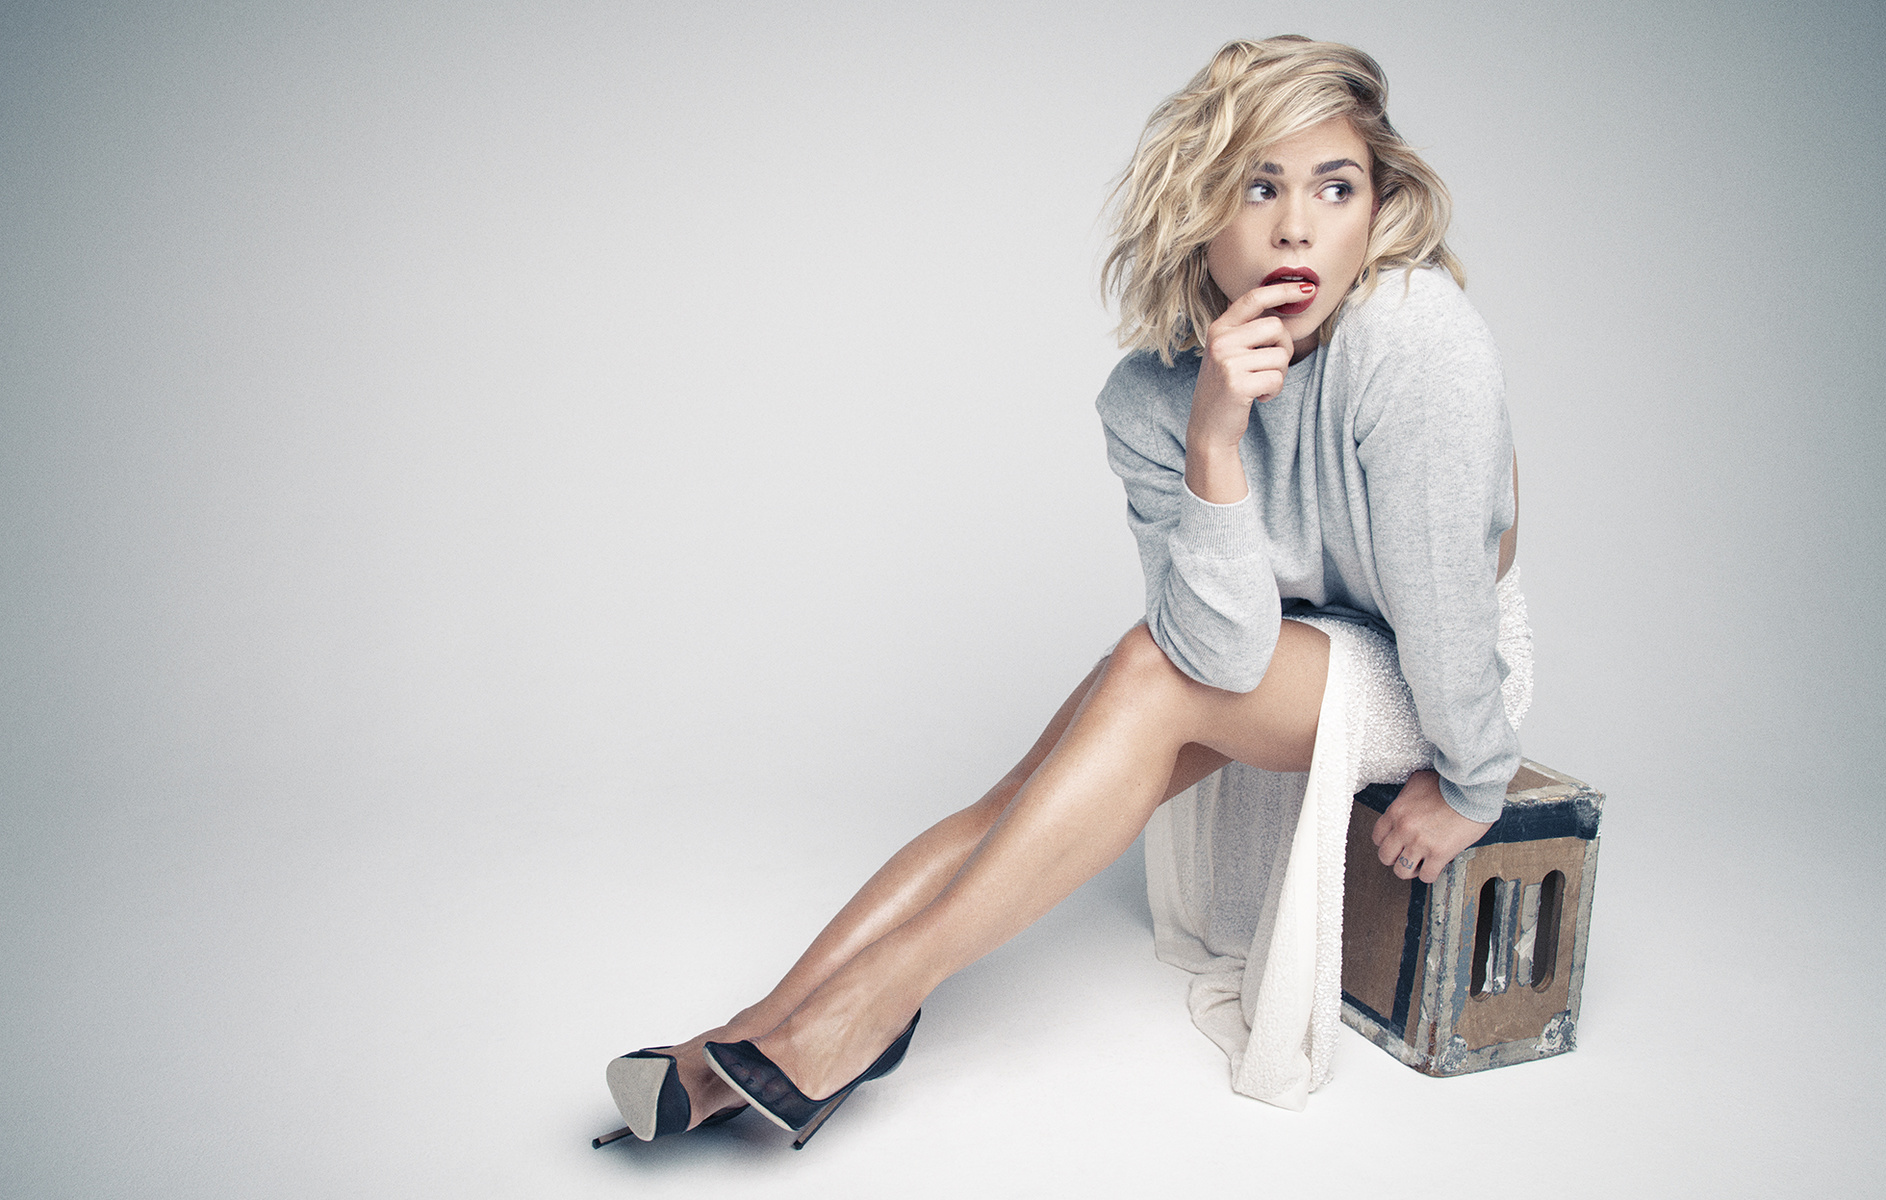 Billie Piper body measurements